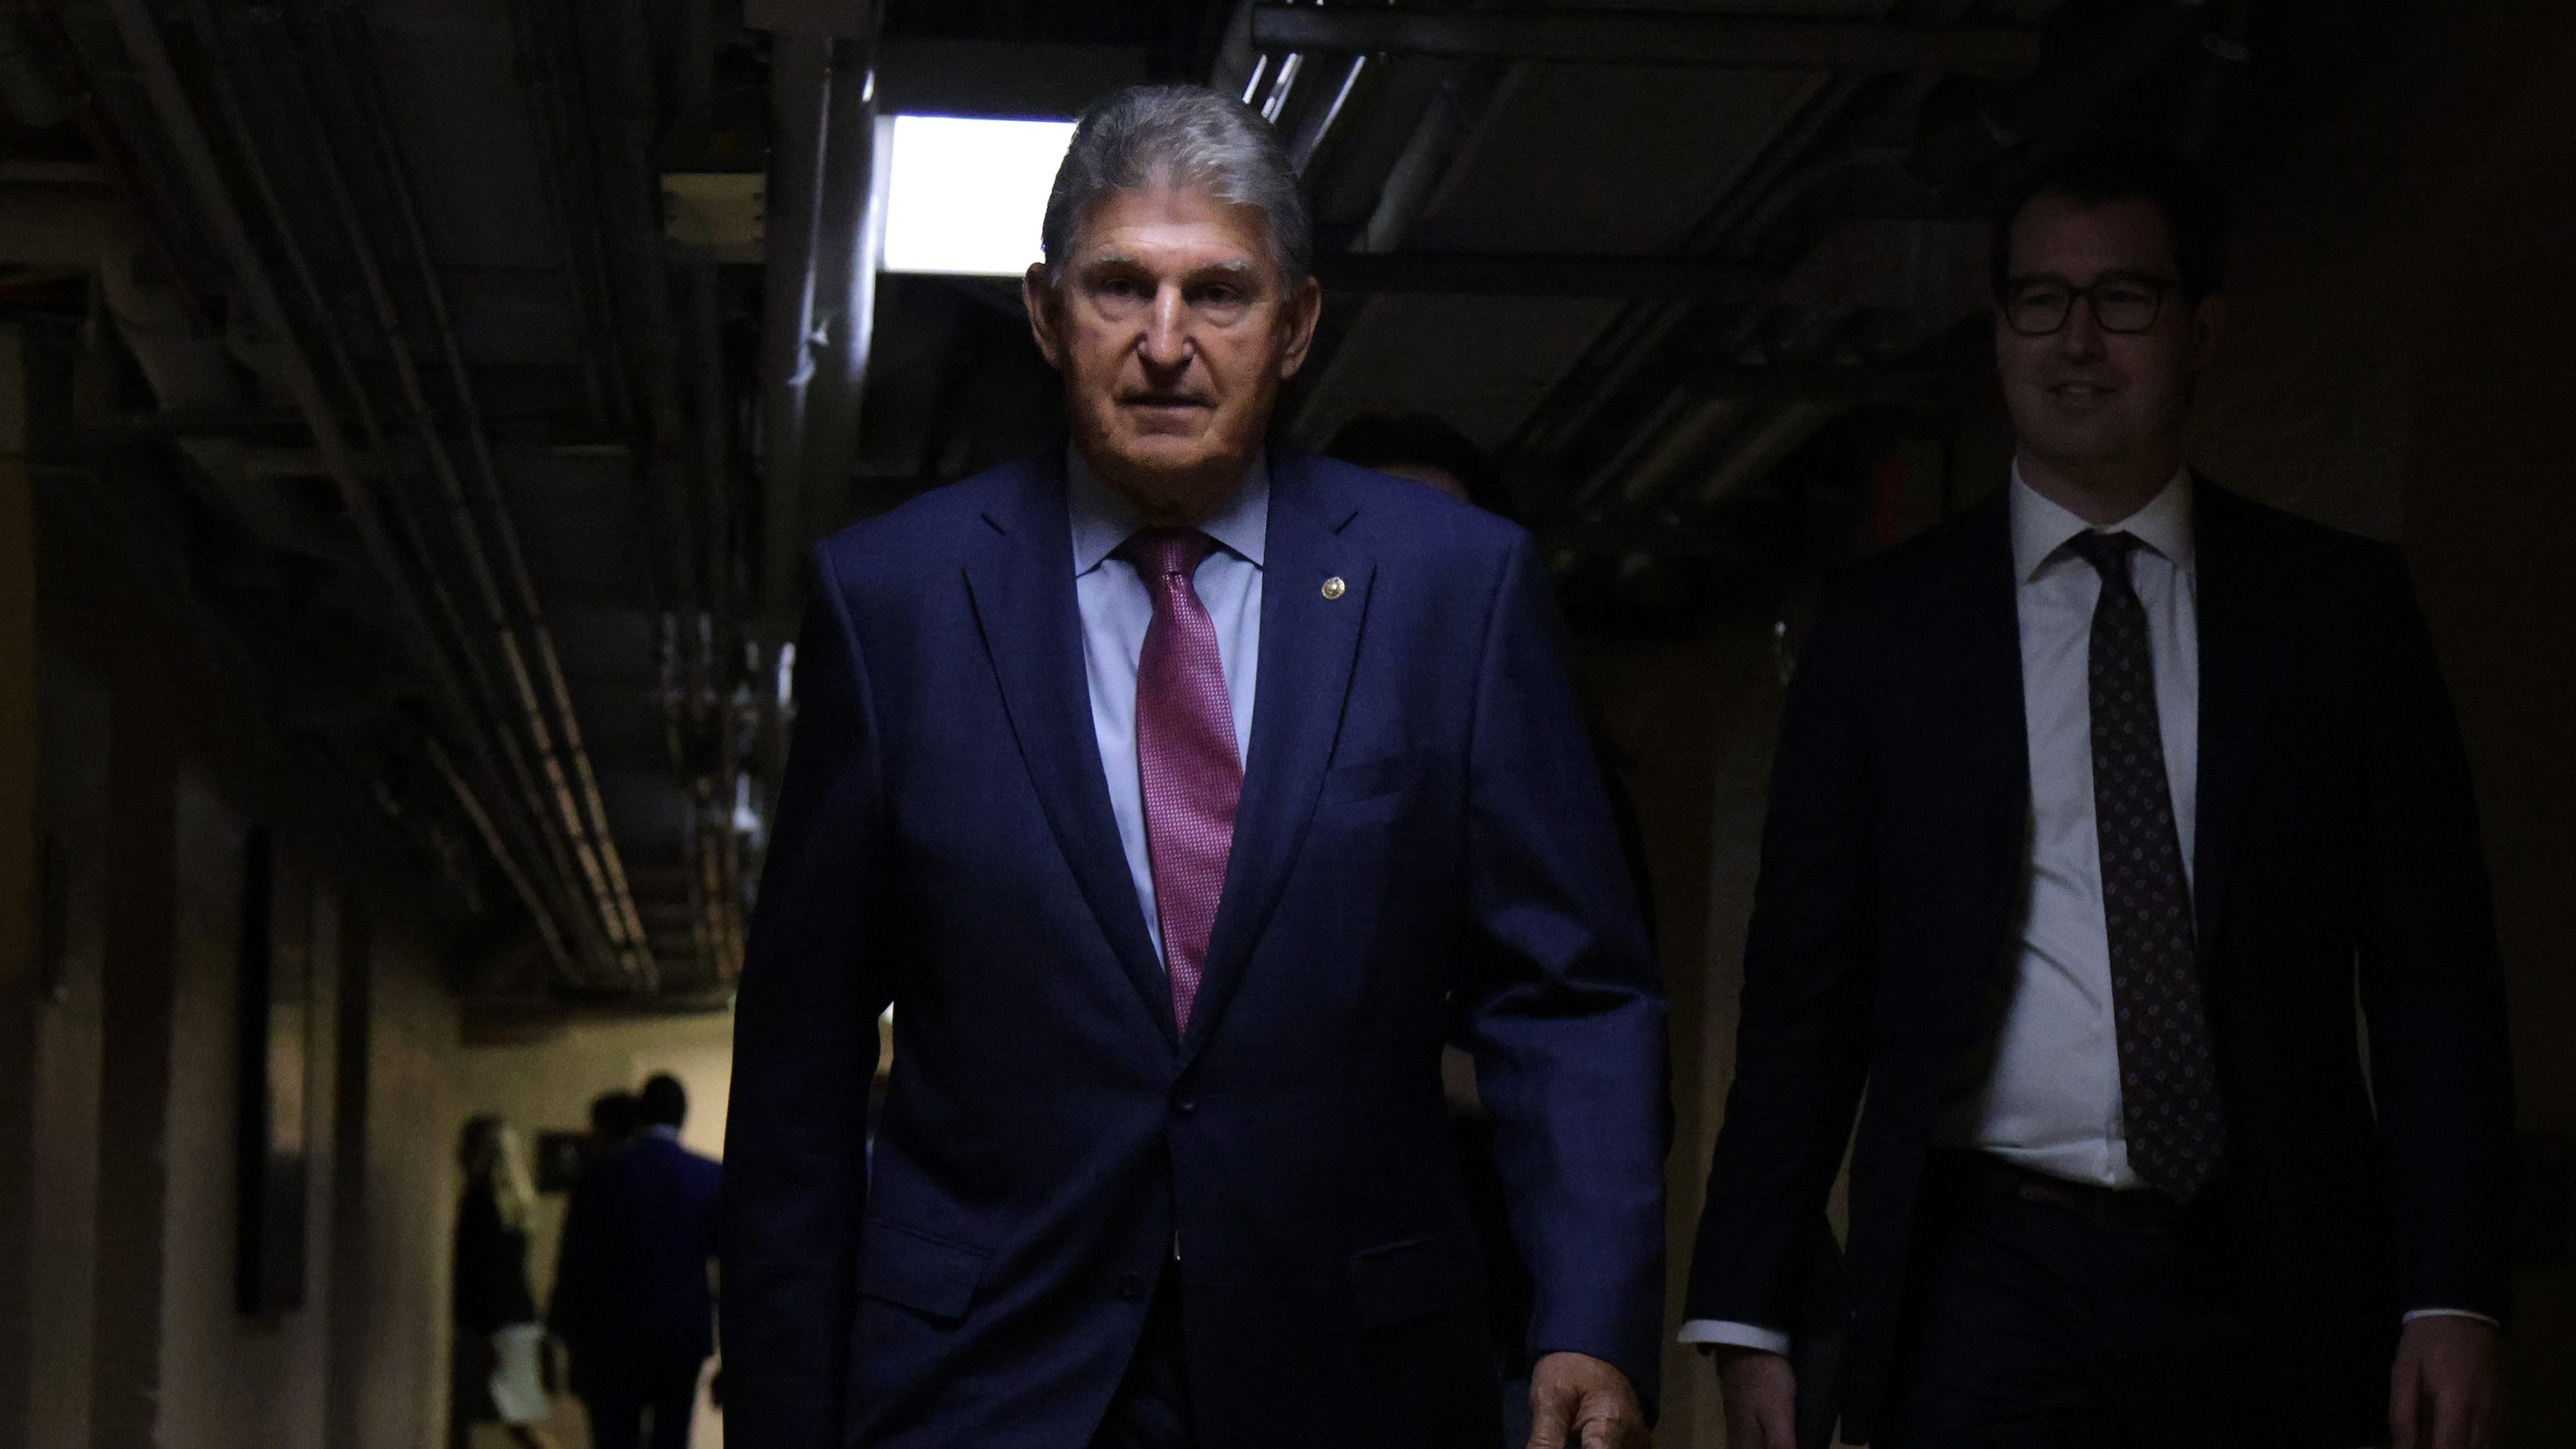 WASHINGTON, DC - JULY 15: U.S. Sen. Joe Manchin (D-WV) arrives at a meeting with members of Texas House Democratic Caucus at the U.S. Capitol Thursday. the Texas lawmakers are meeting senators to discuss voting rights.